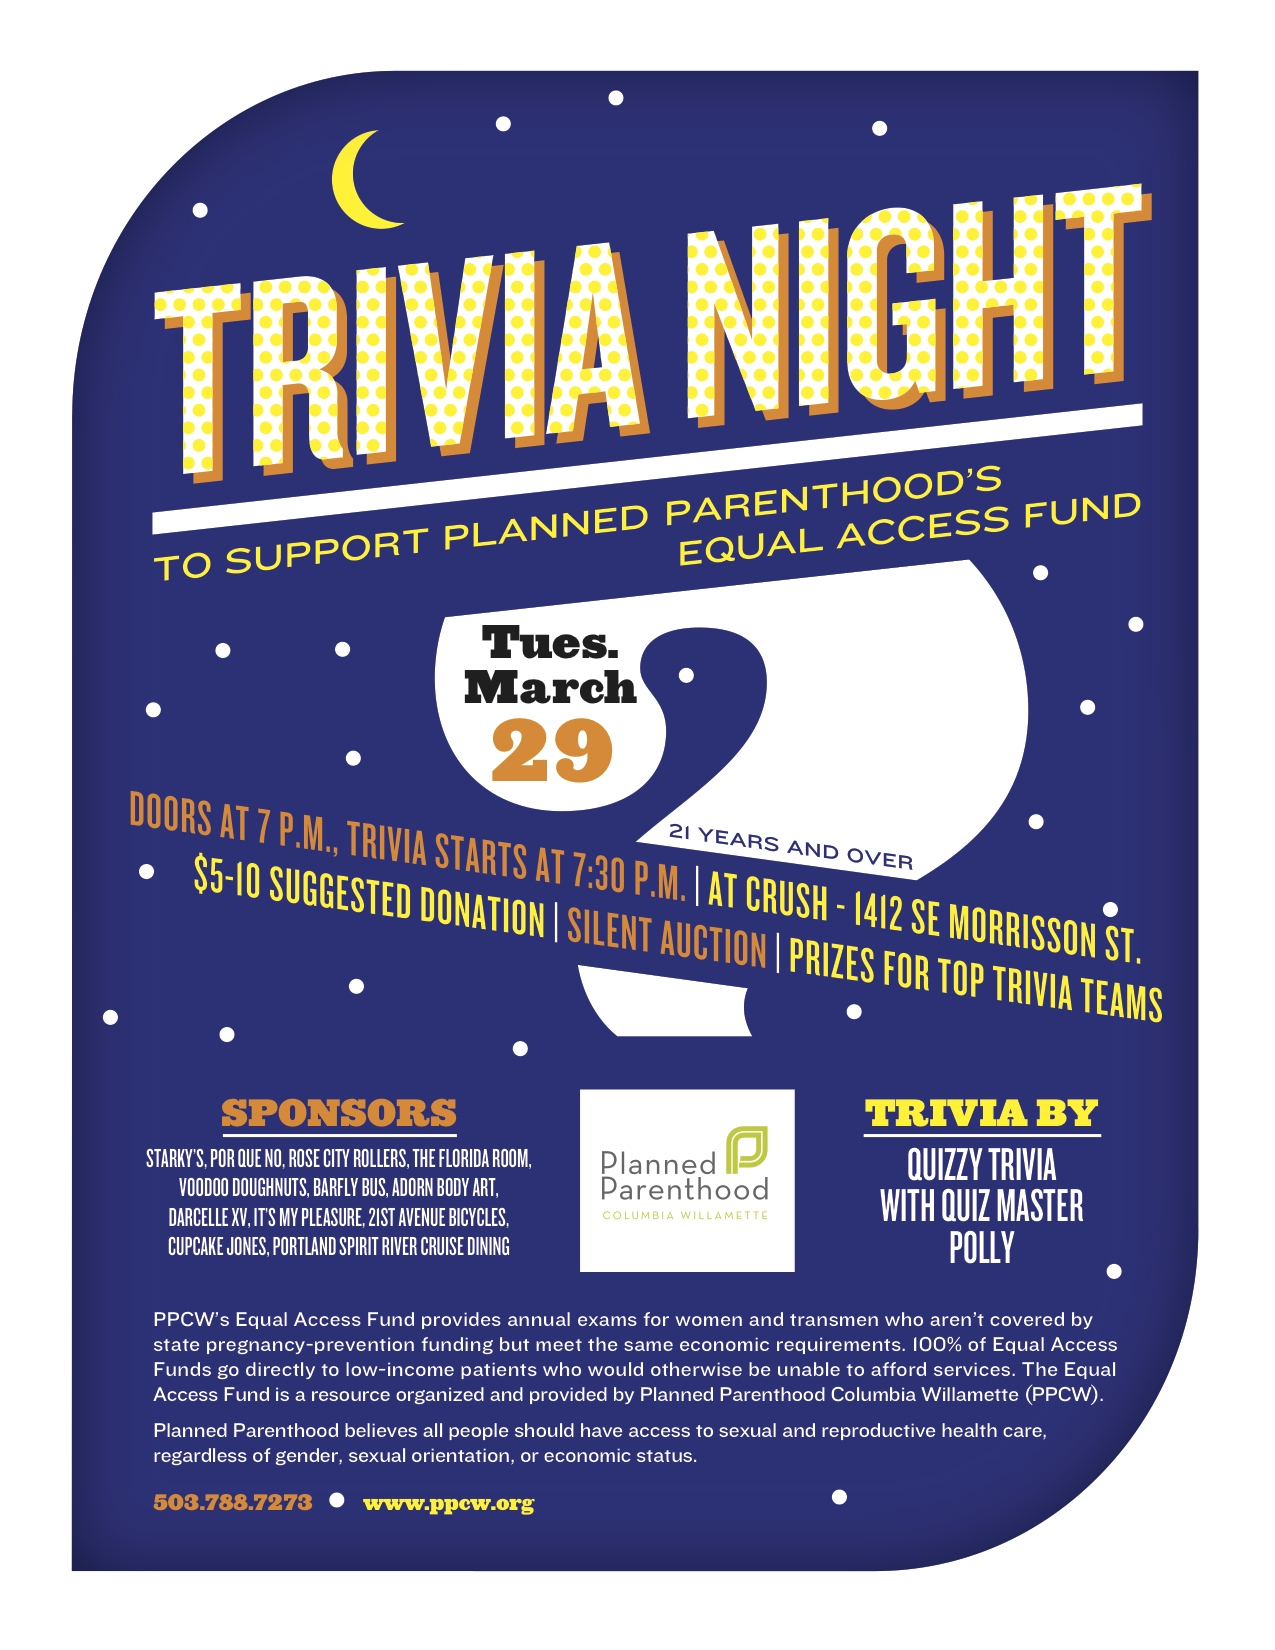 Contractor Invoices Excel Poster Tuesday Trivia Picture  Pta Trivia Night  Pinterest  Trivia Receipt Scanning Software with Blank Invoice Pdf Download Free Excel  Restaurant Receipts Templates Word